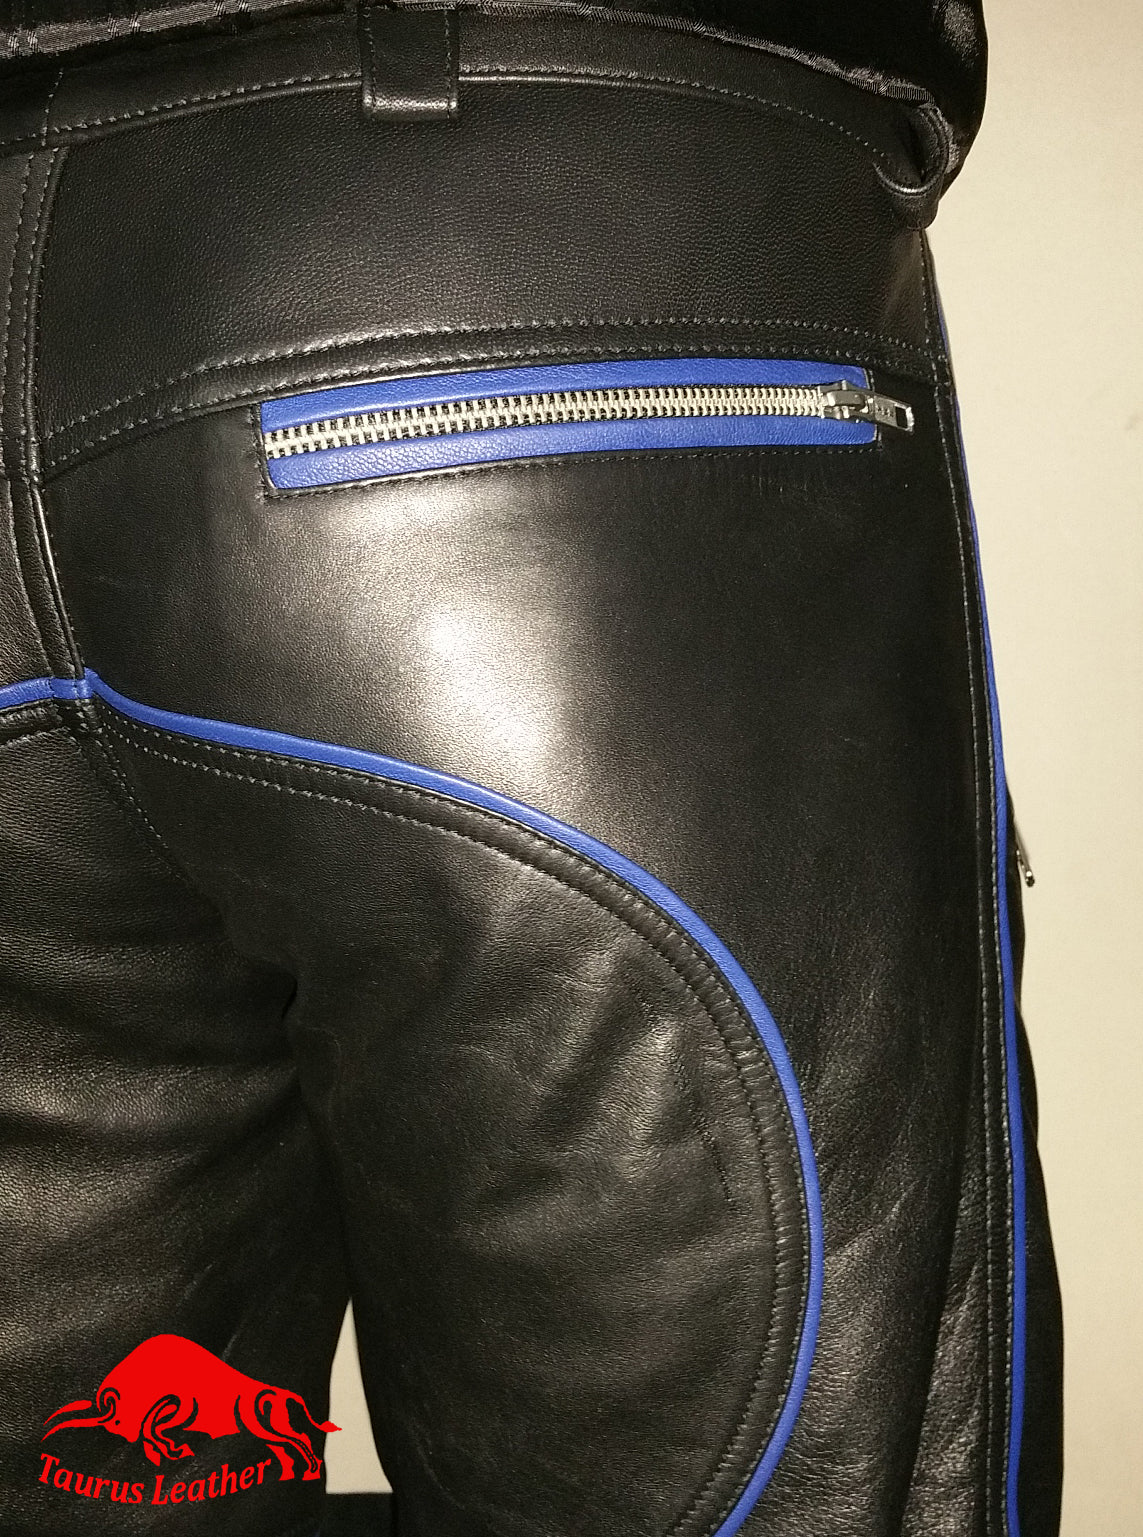 TAURUS LEATHER Black Sheep Leather Pant & Shirt With Blue Trimming